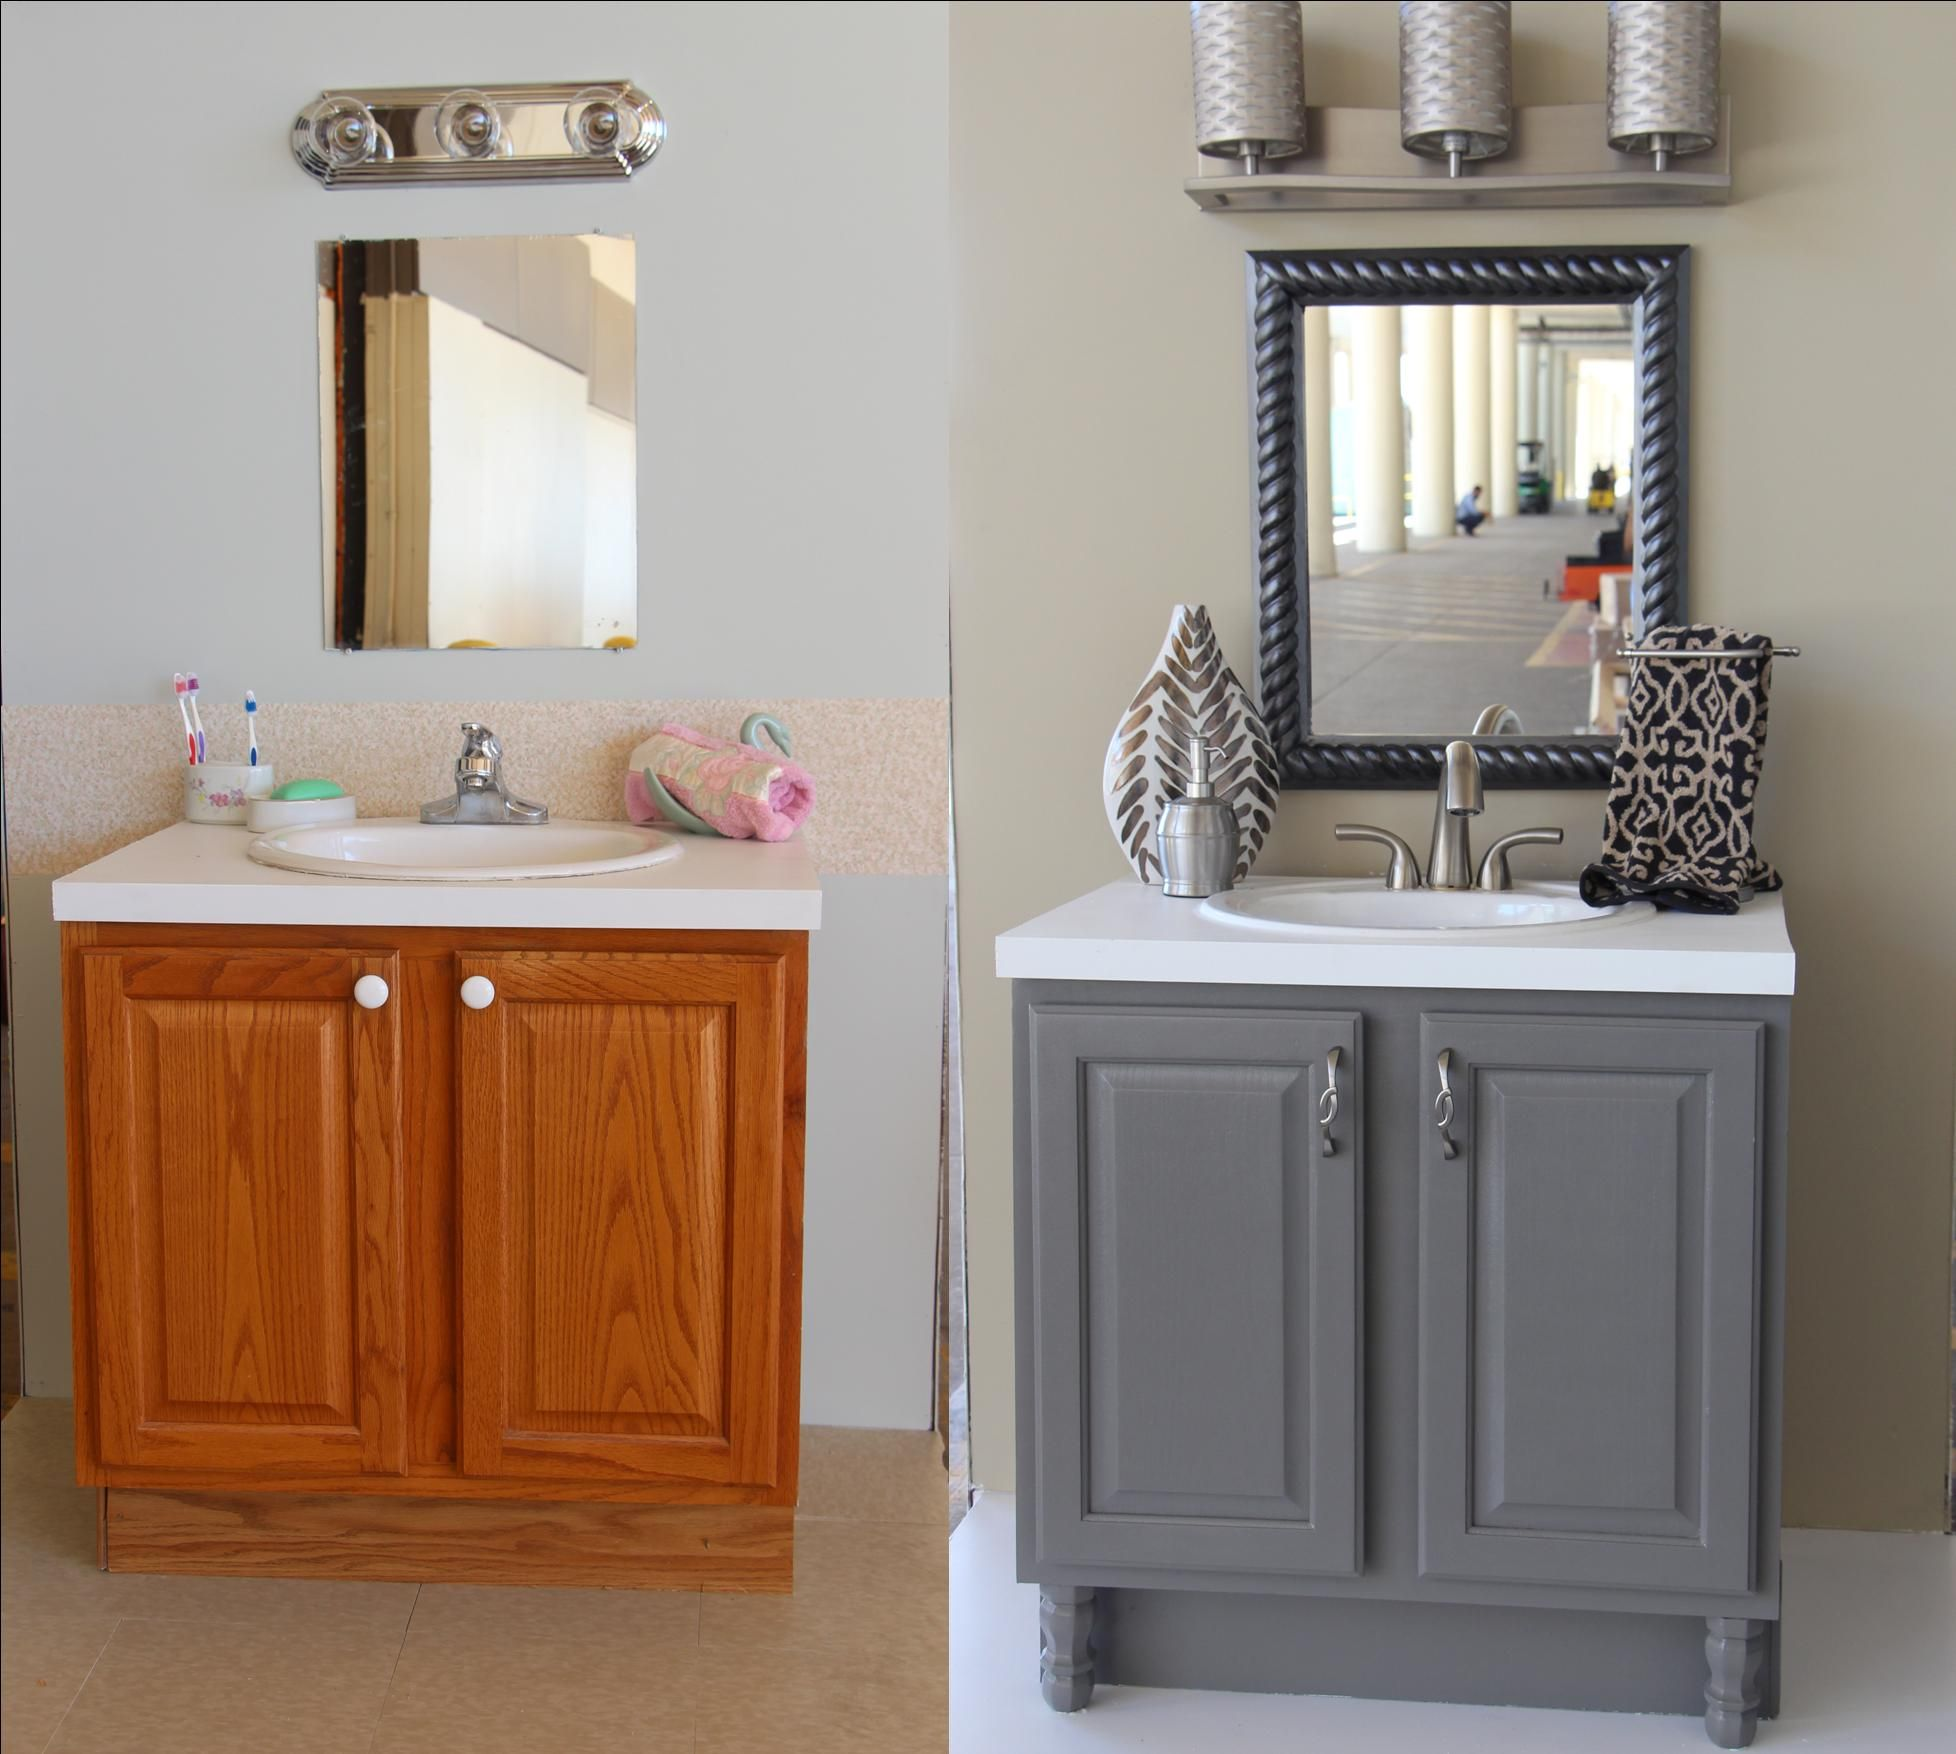 Bathroom Updates You Can Do This Weekend! | For the Home ...